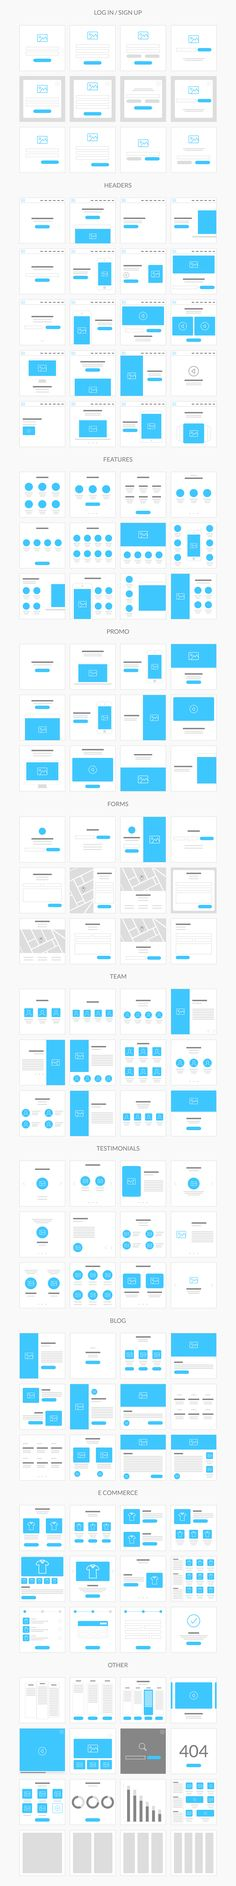 Flowy is made with fast workflow in mind, so we created 236 ready to use templates, built on the 1170 grid and in Photoshop file format. You can create flowcharts for both mobile and web projects of any complexity and show them to your team or clients in … Mo